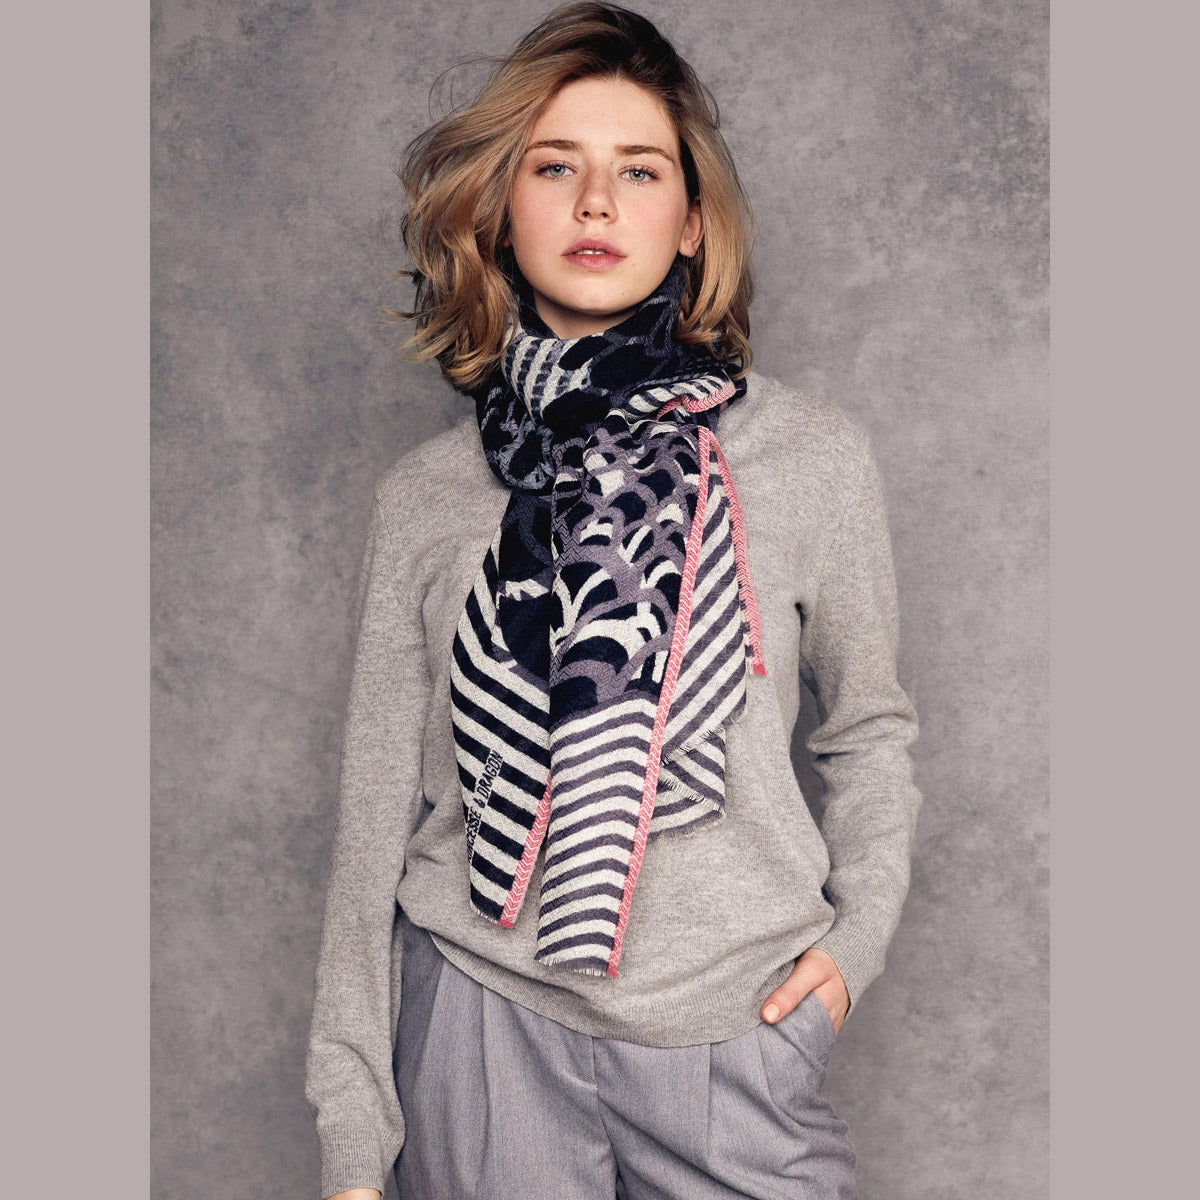 Model Wearing a Céleste - 100% Fine Merino Wool Scarf - Black & Grey - Sold by Chic & Basta